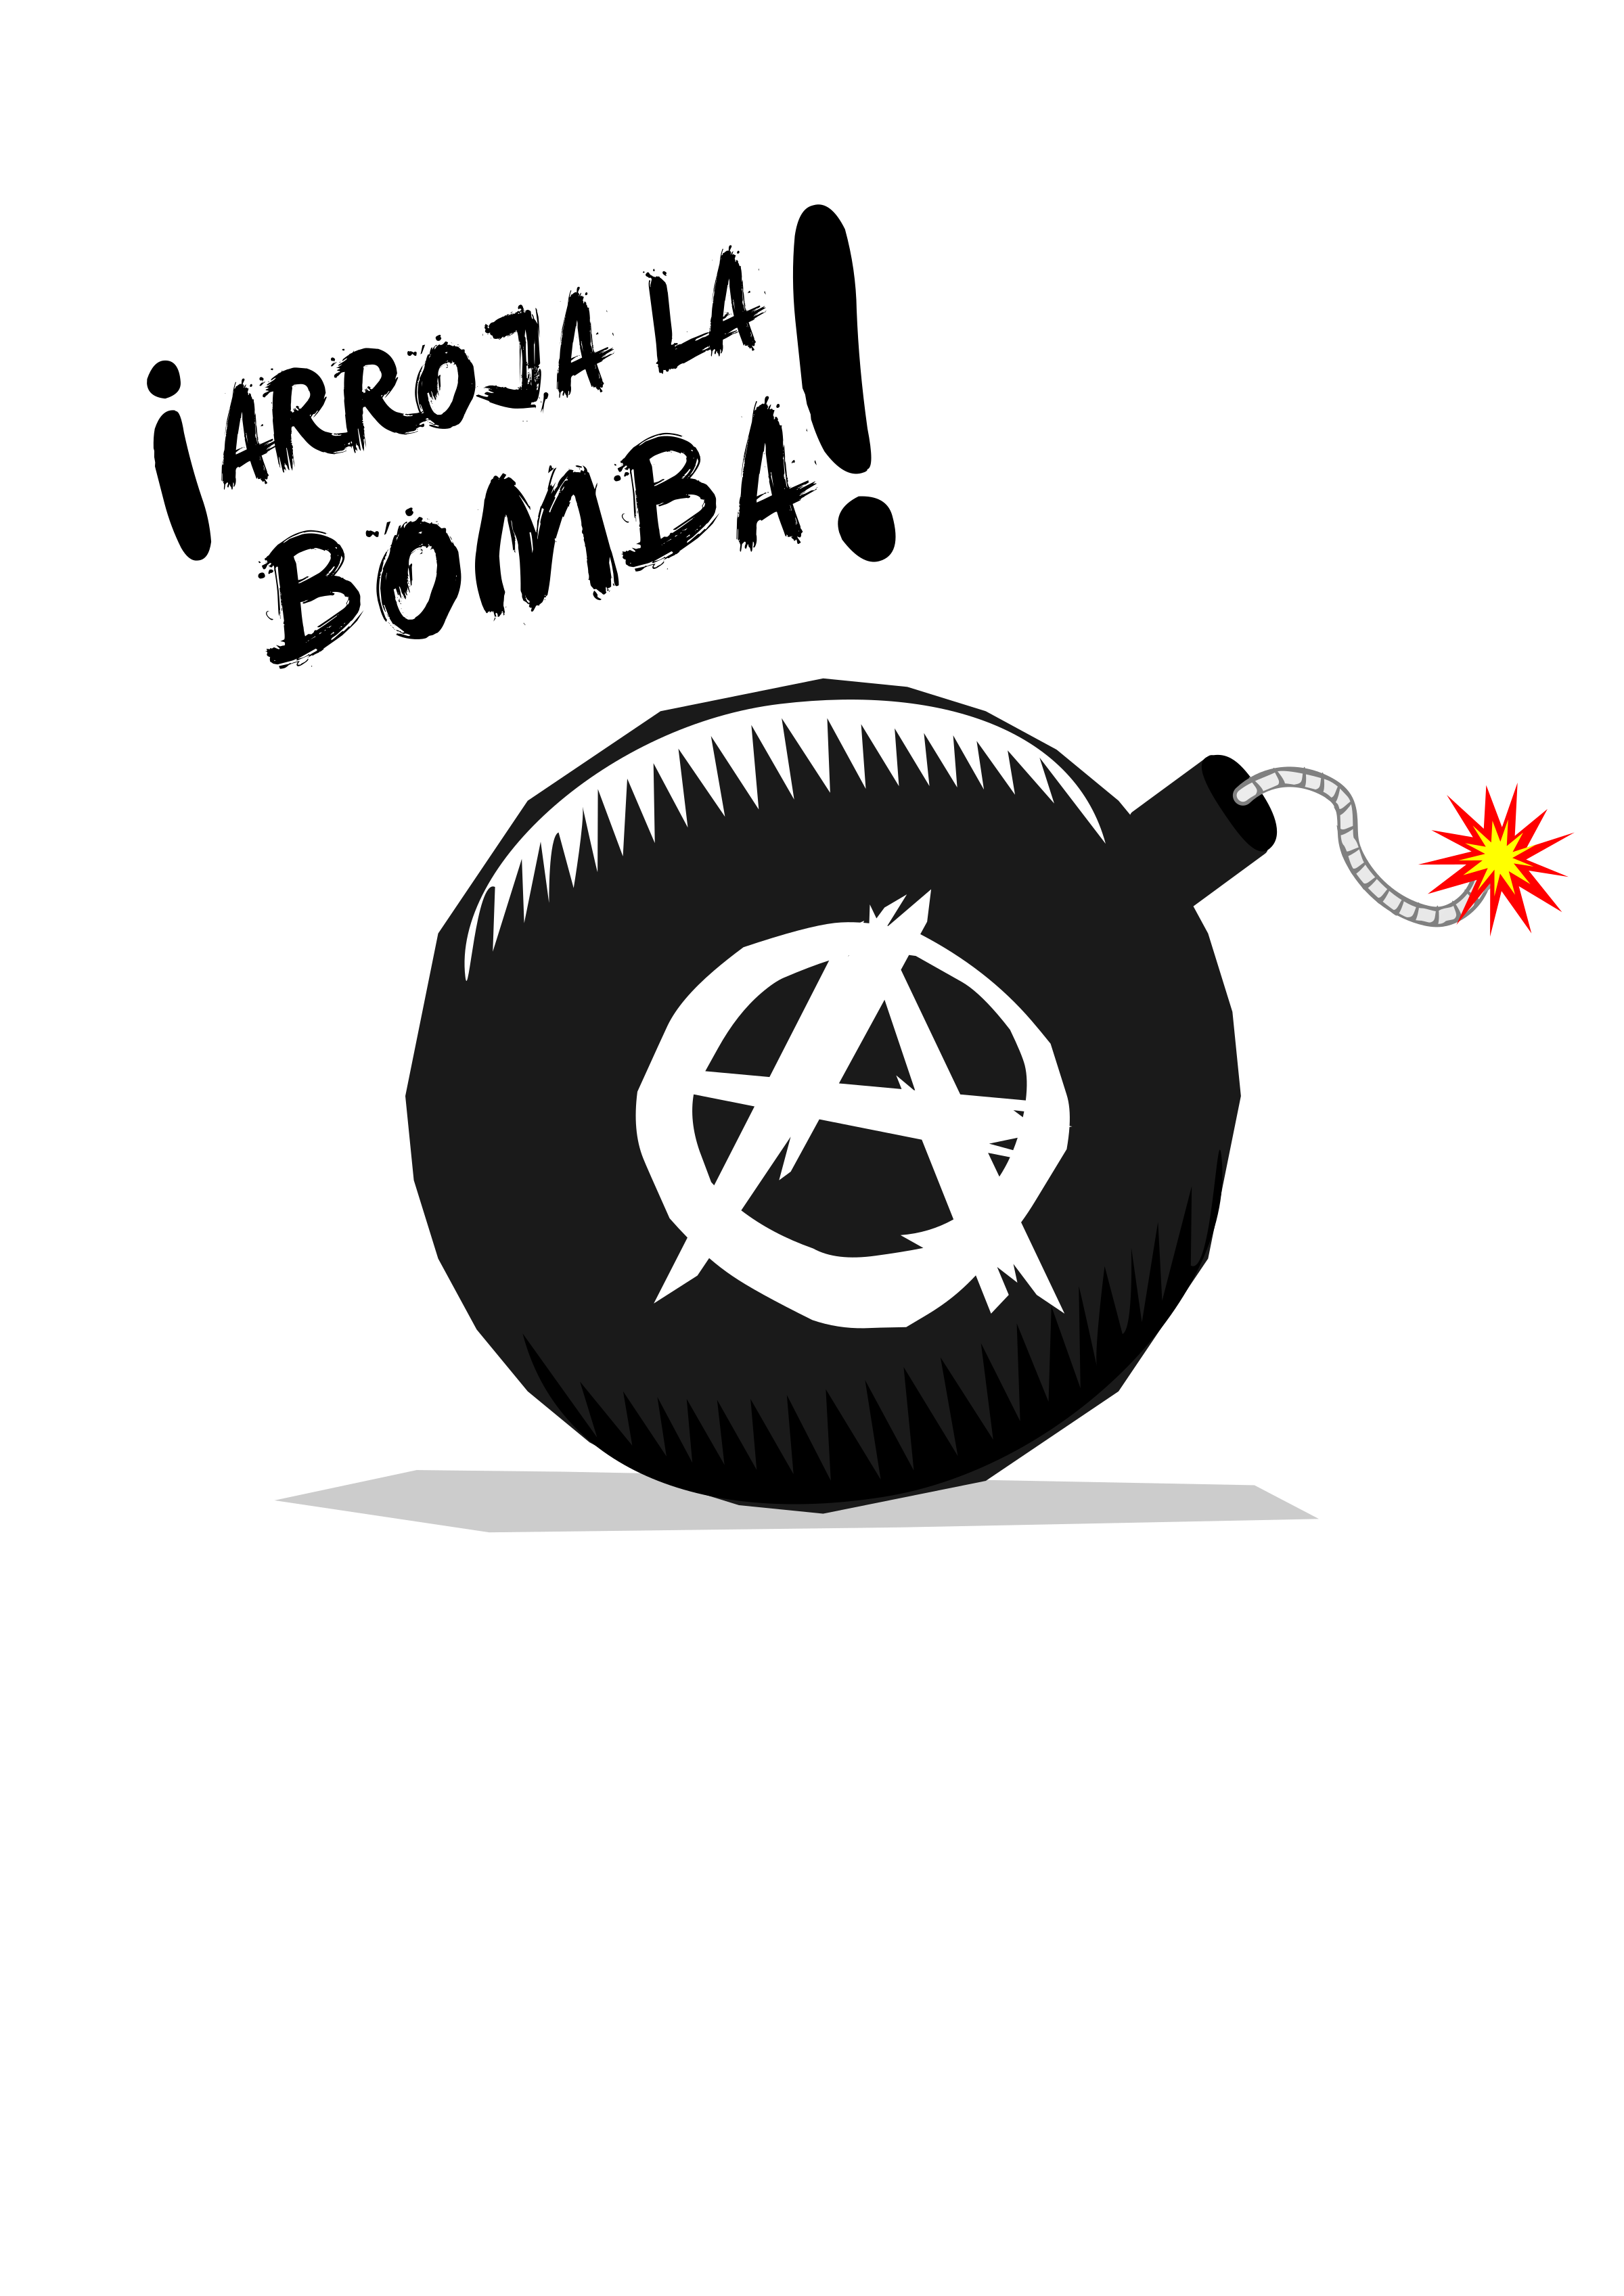 Anarchist Bomb (v2) by argumento